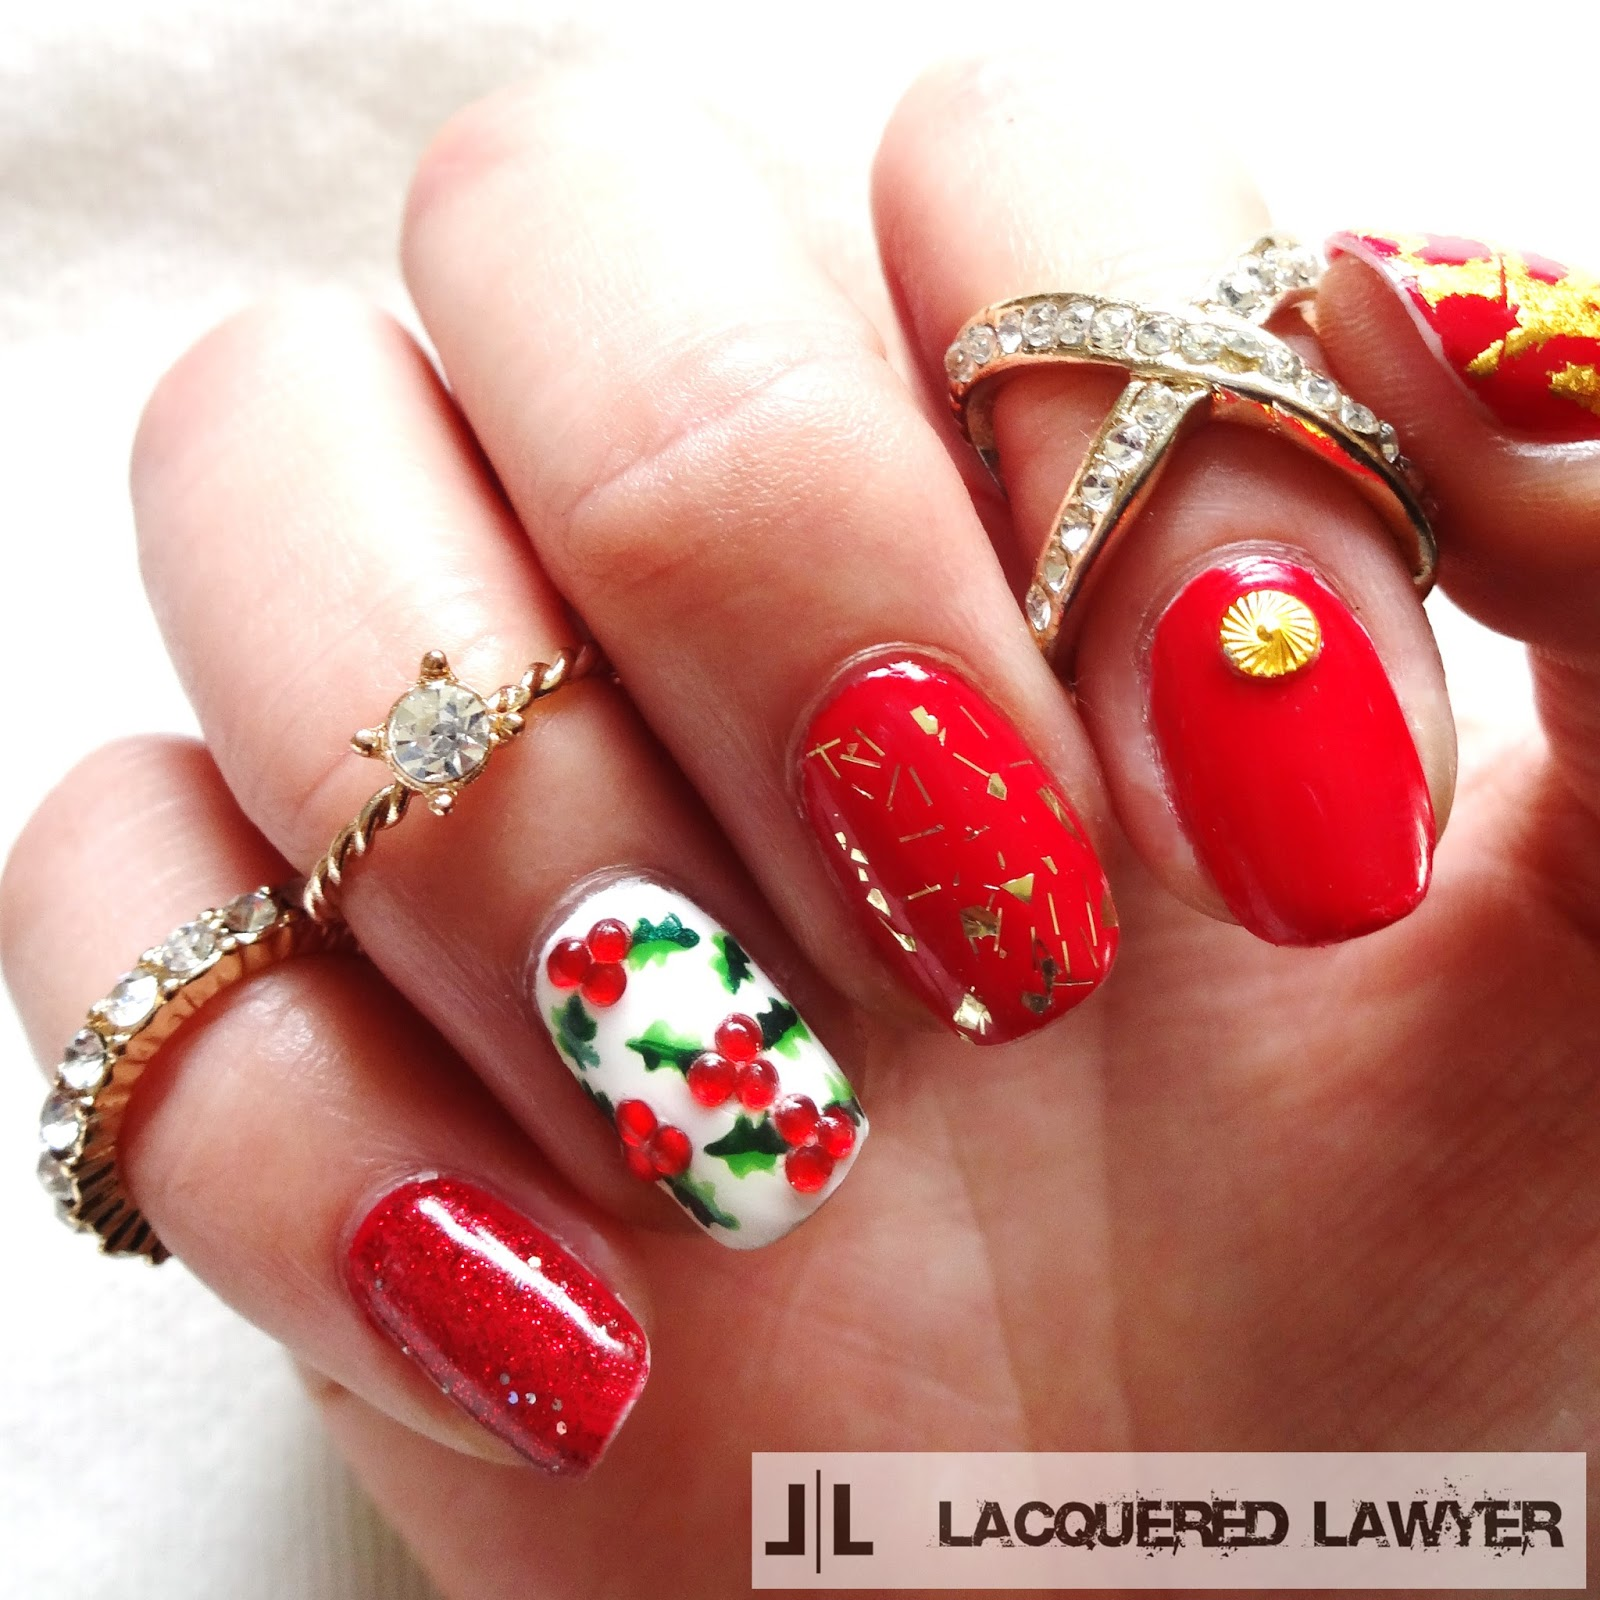 Lacquered lawyer nail art blog holly berry holly christmas nails prinsesfo Gallery